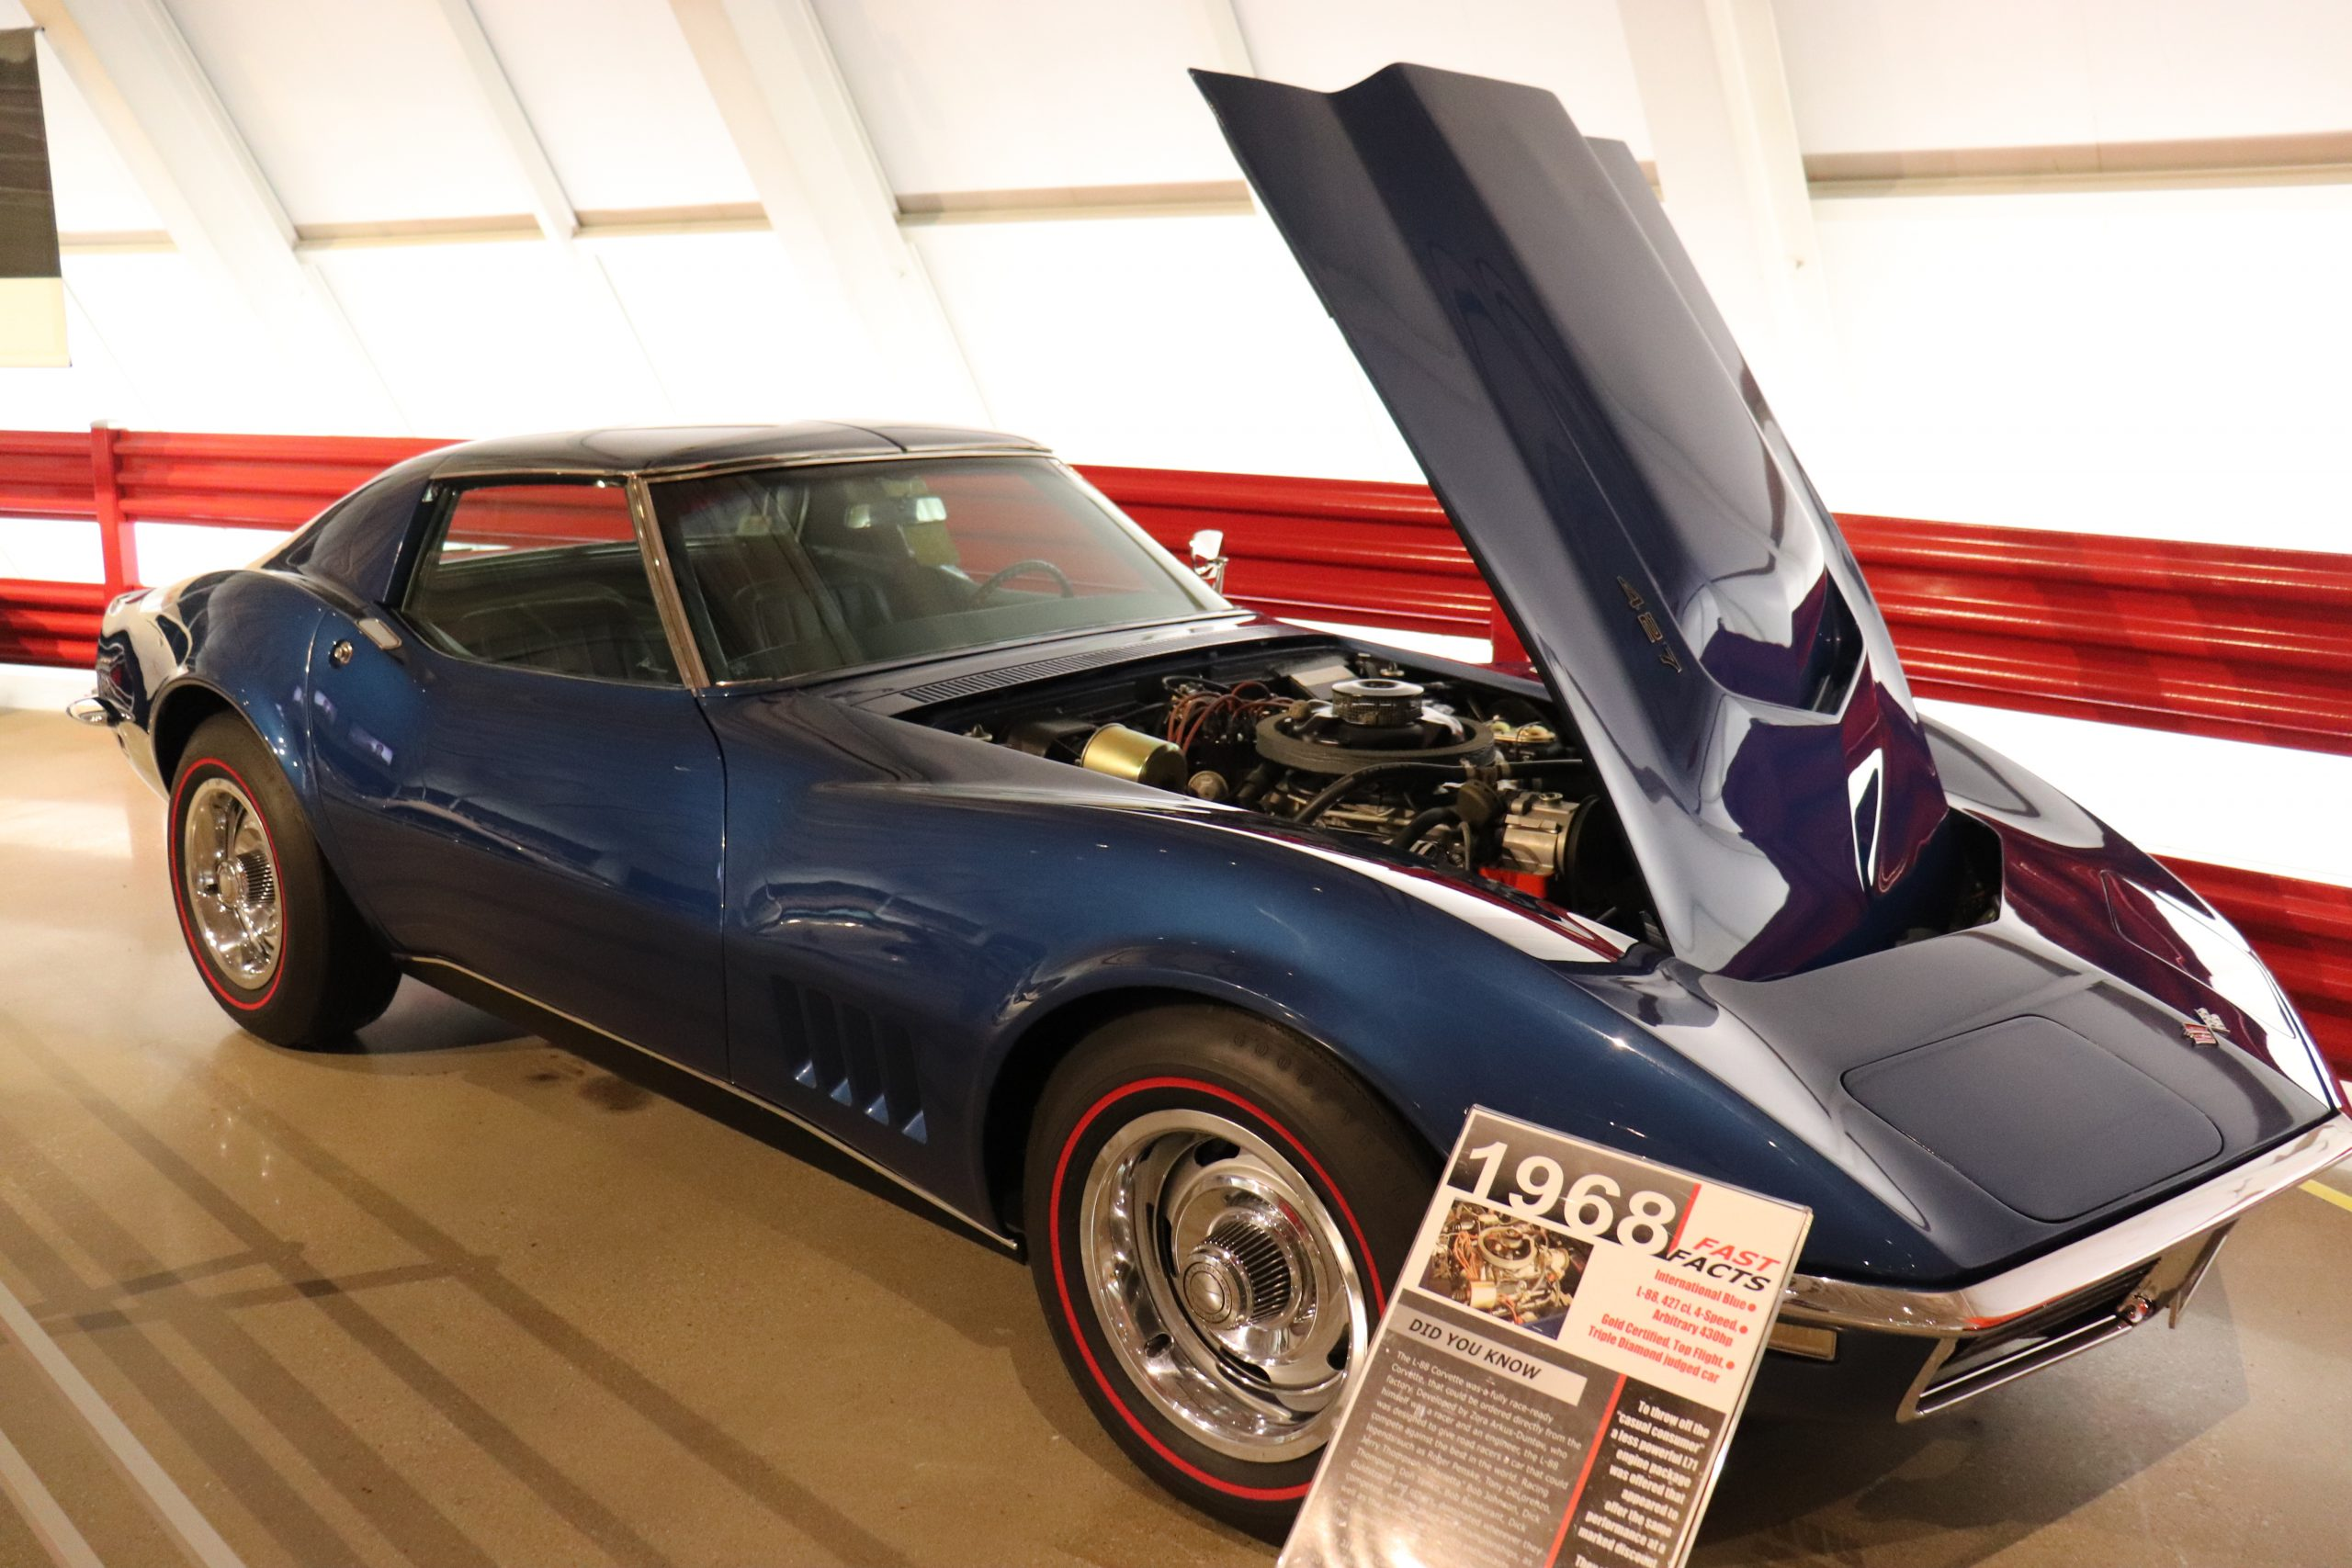 1968 Corvette with Removable Back Window